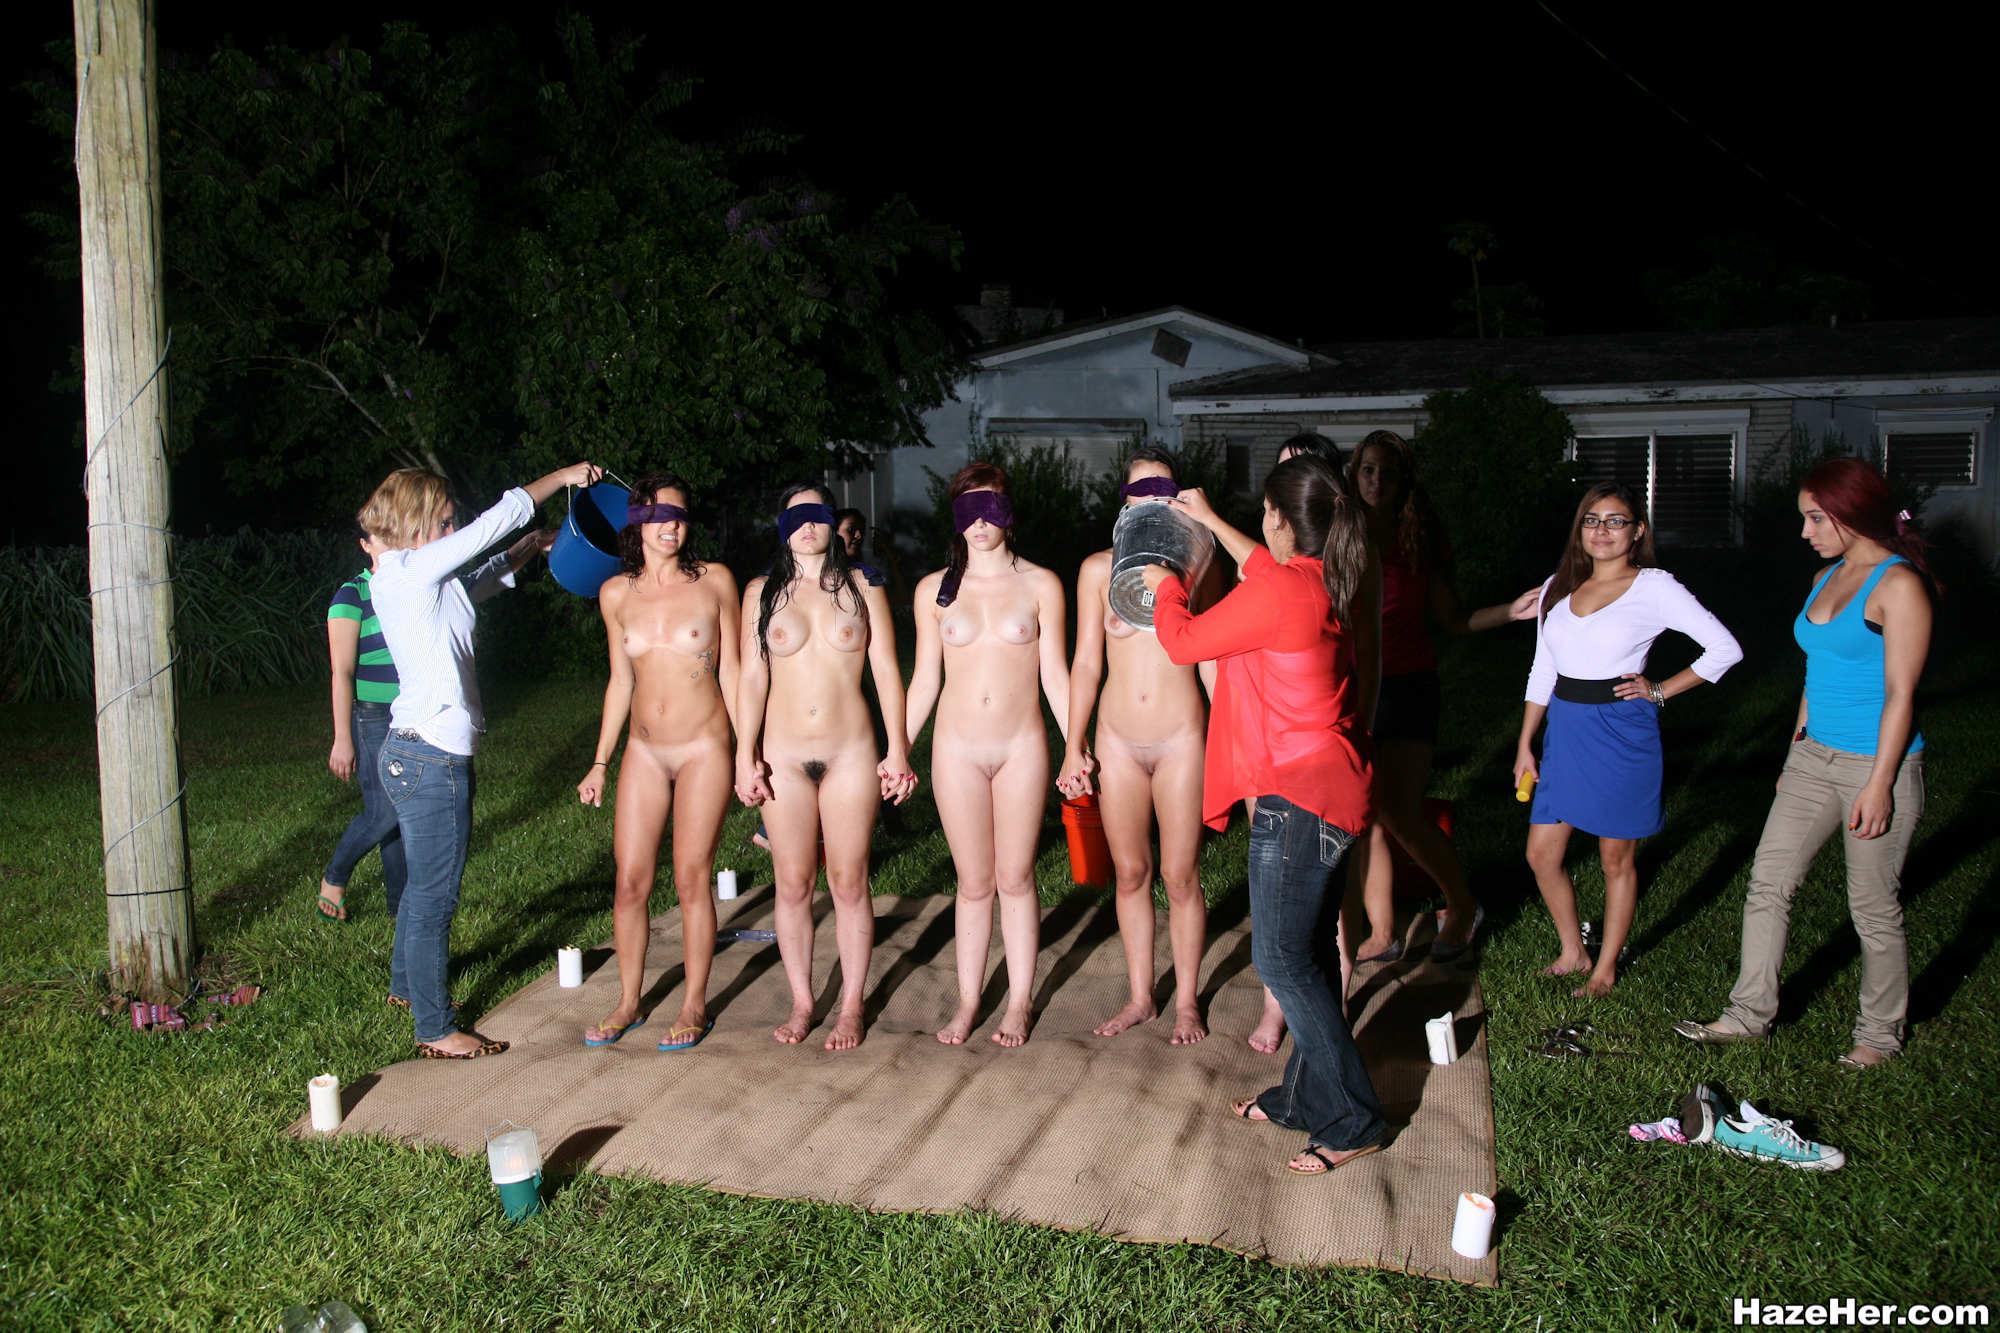 Remarkable, fun sized girls nude think